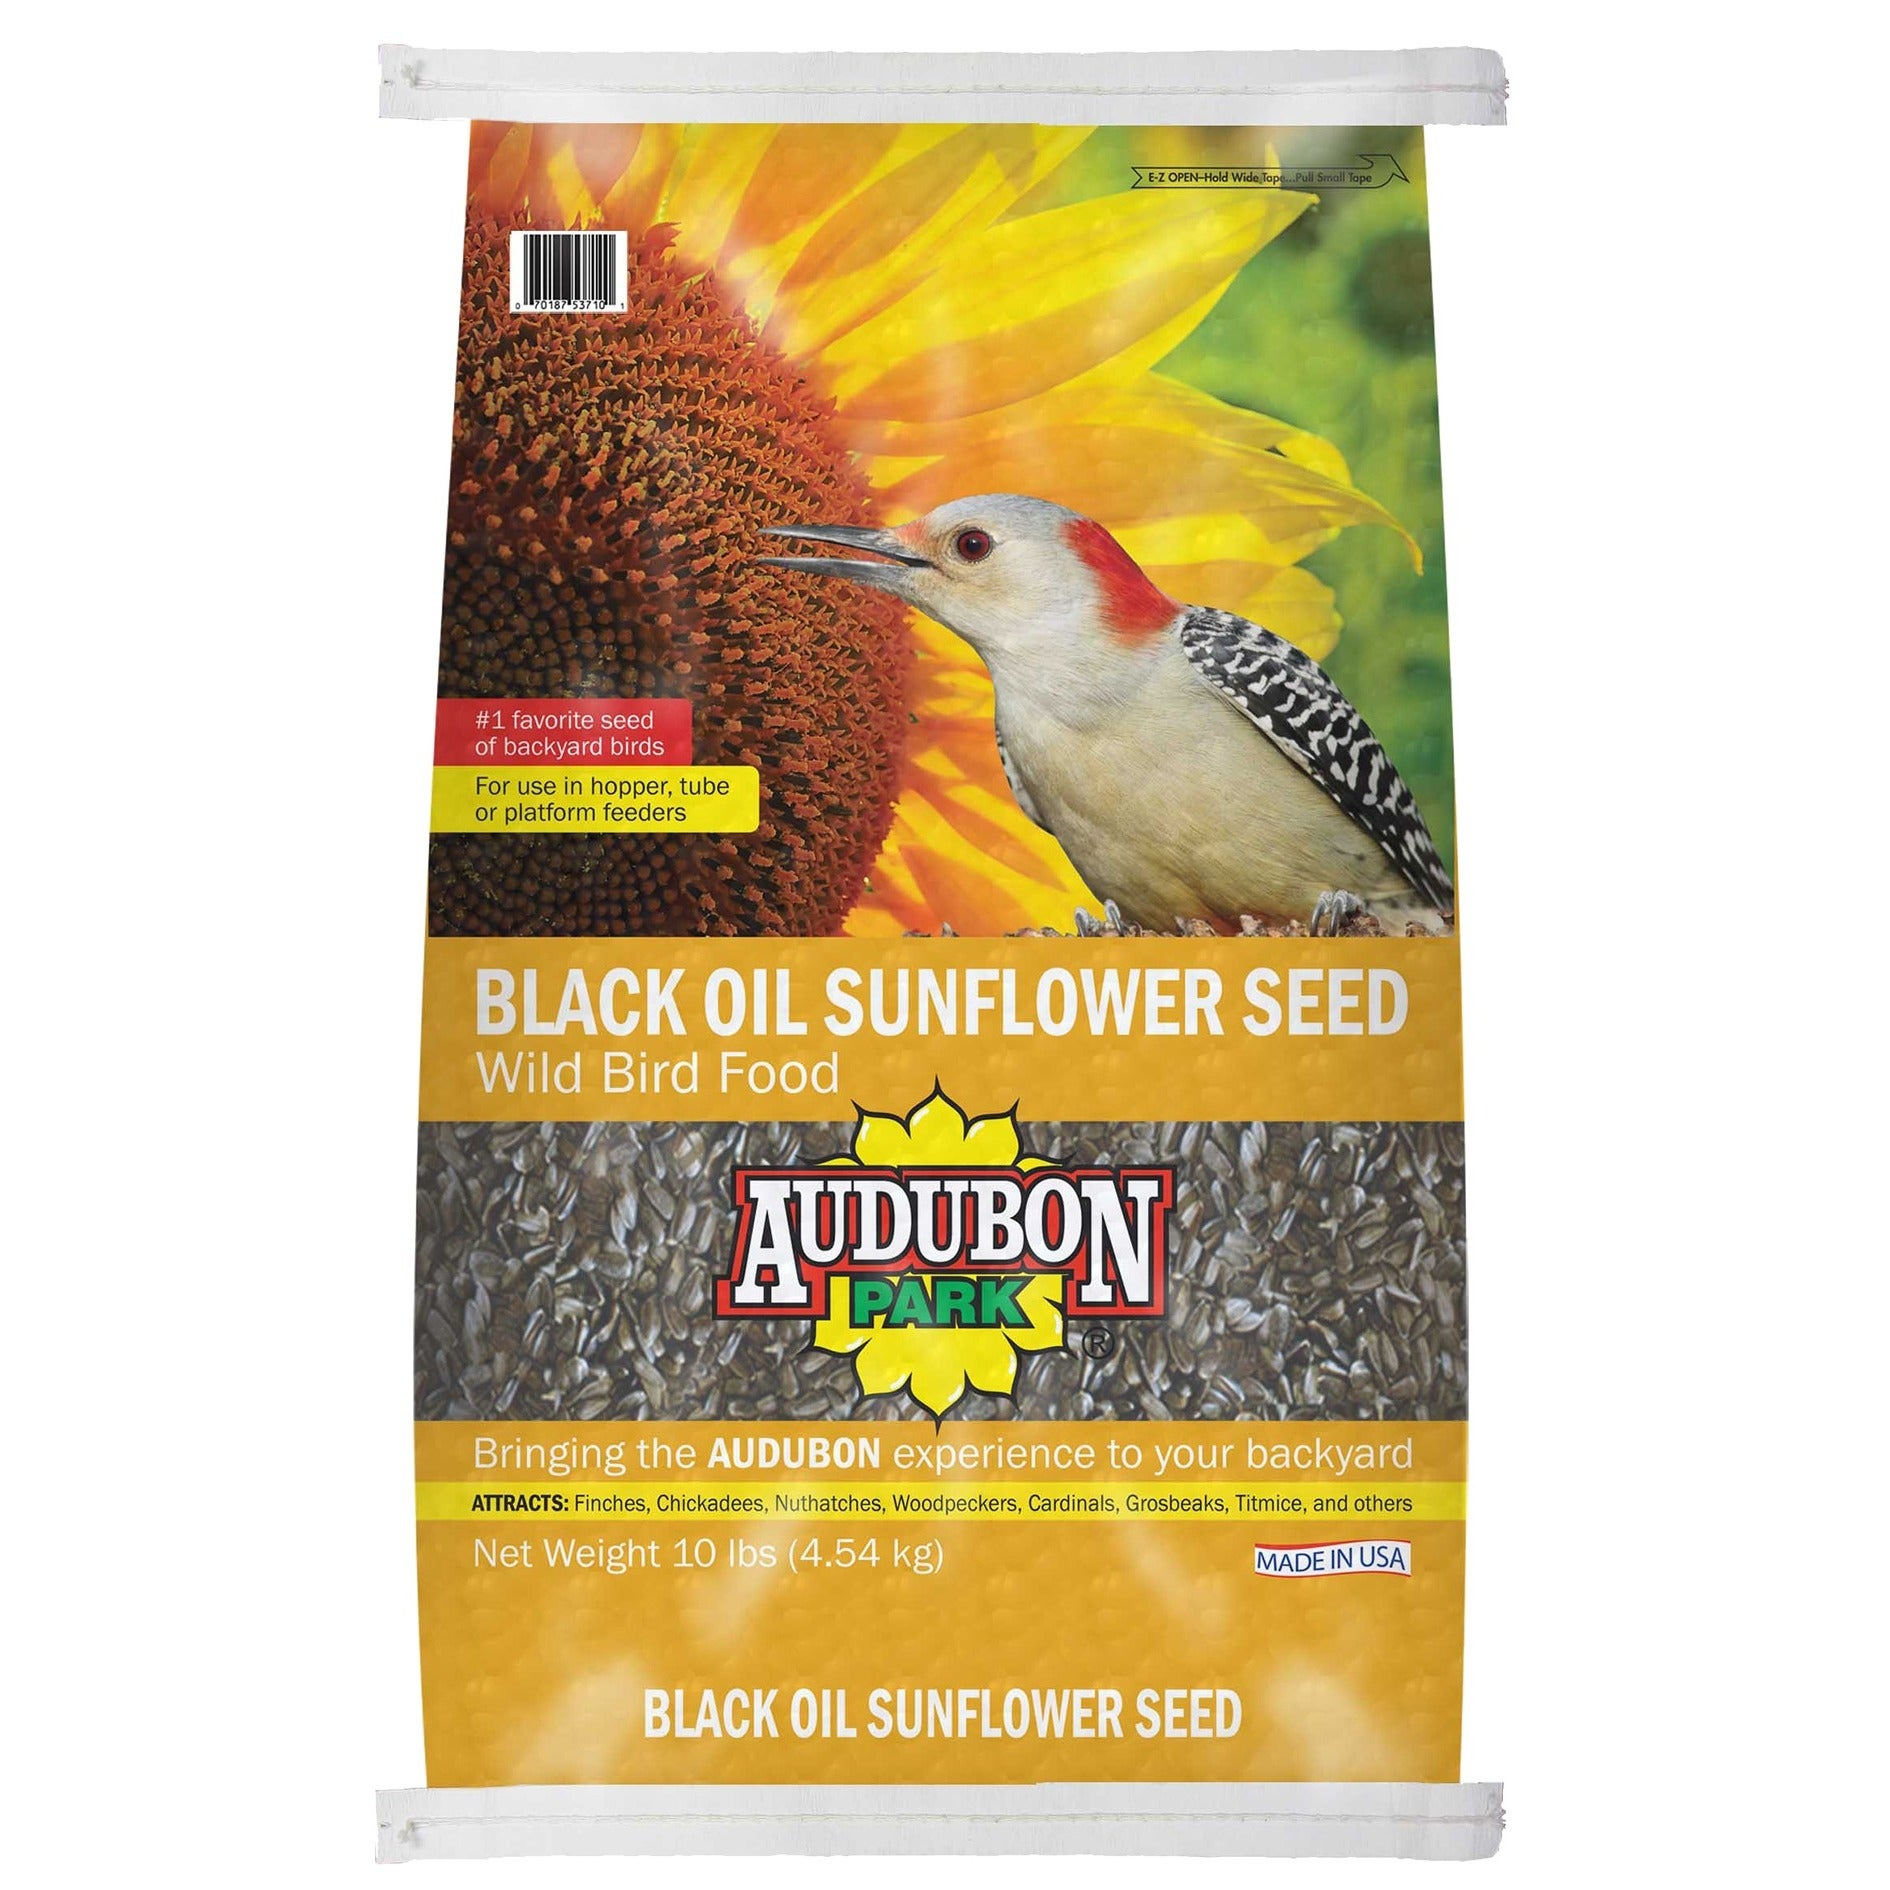 Audubon 10 Lb Sunflower Seed Wild Bird Food (10 LB)